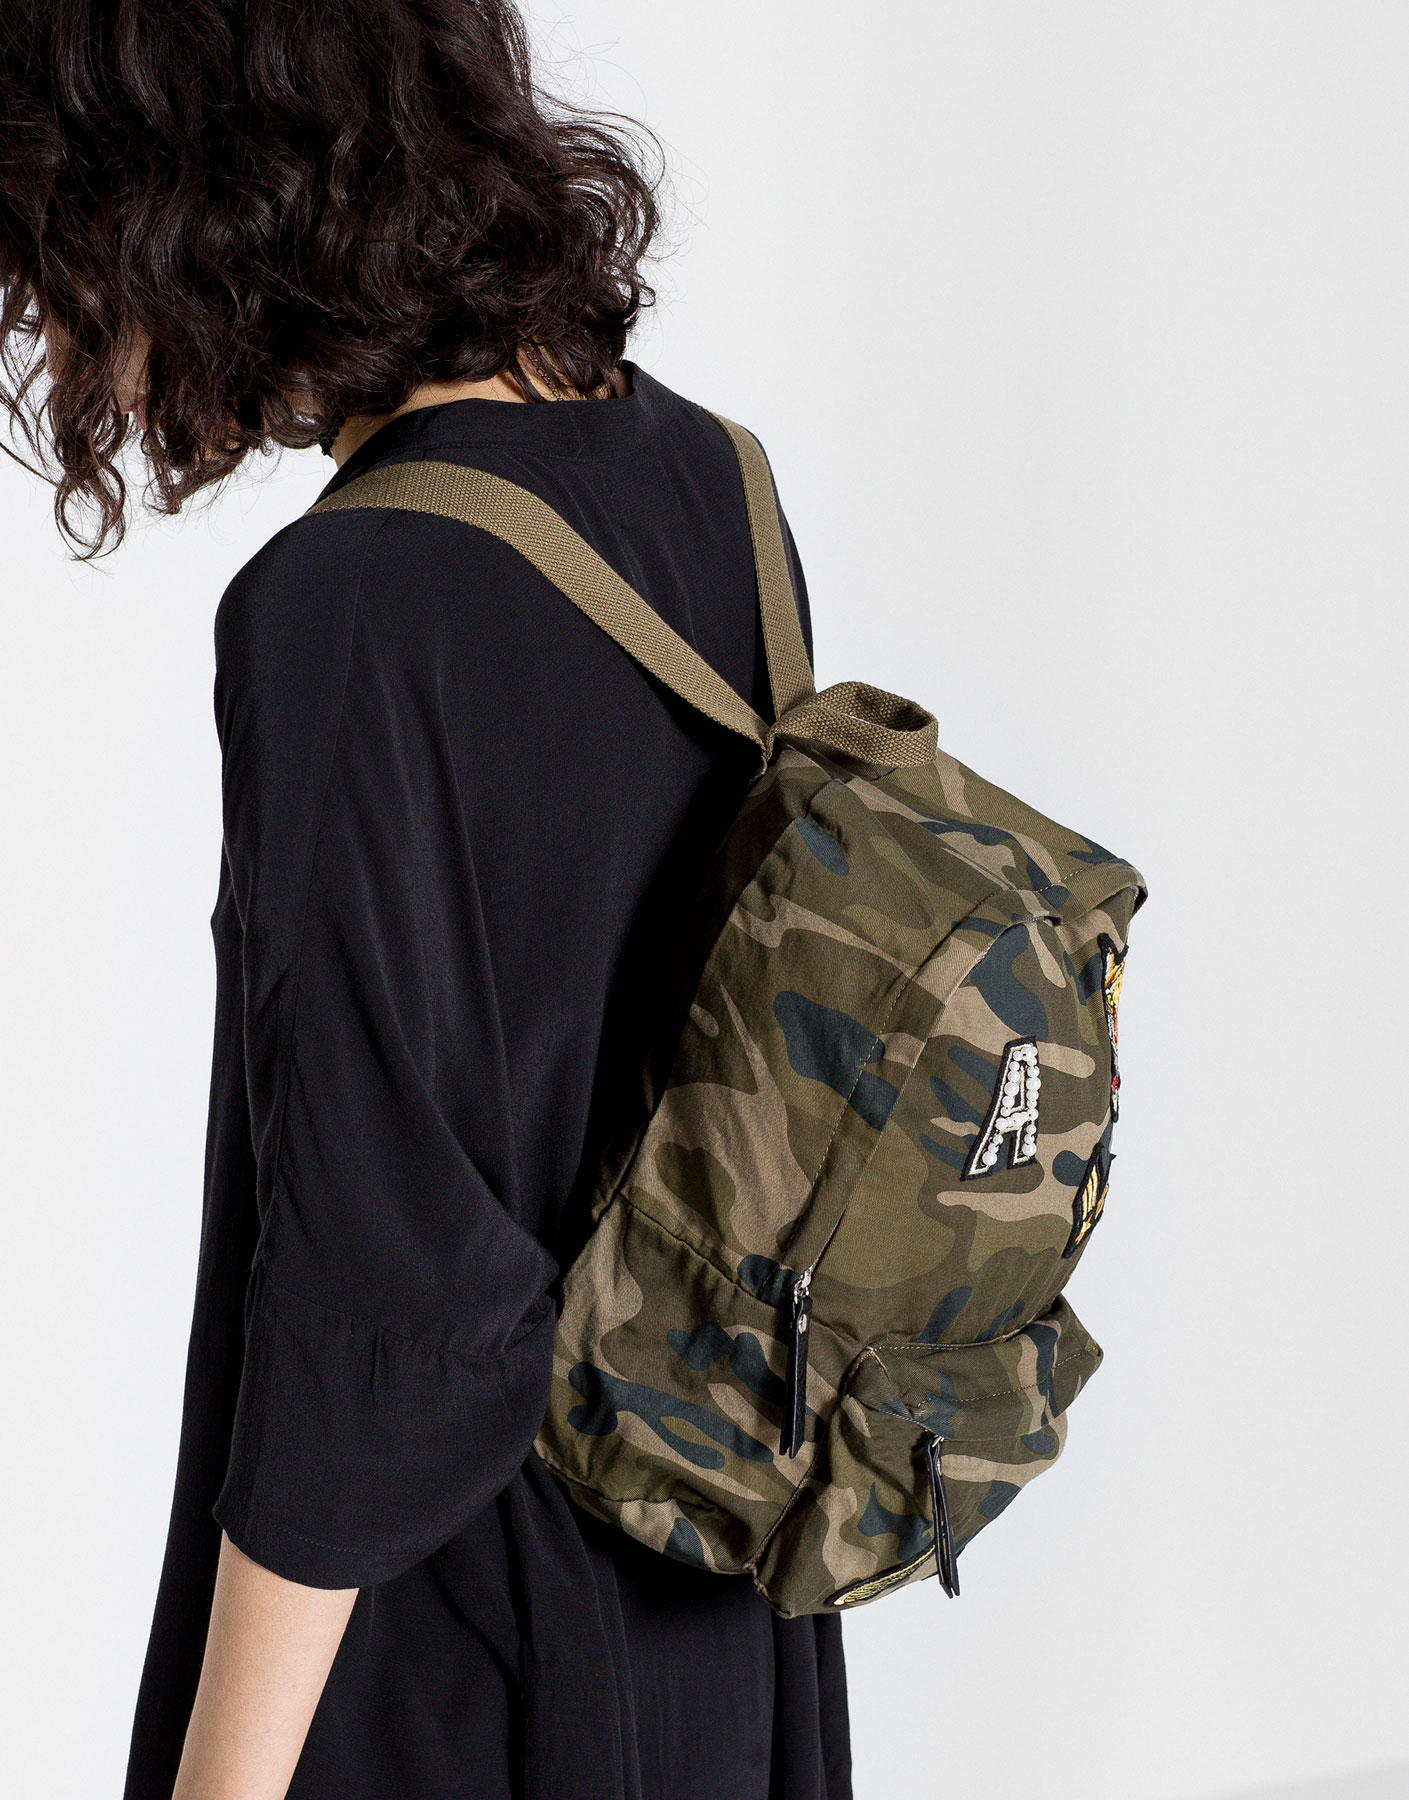 Camouflage backpack with patches